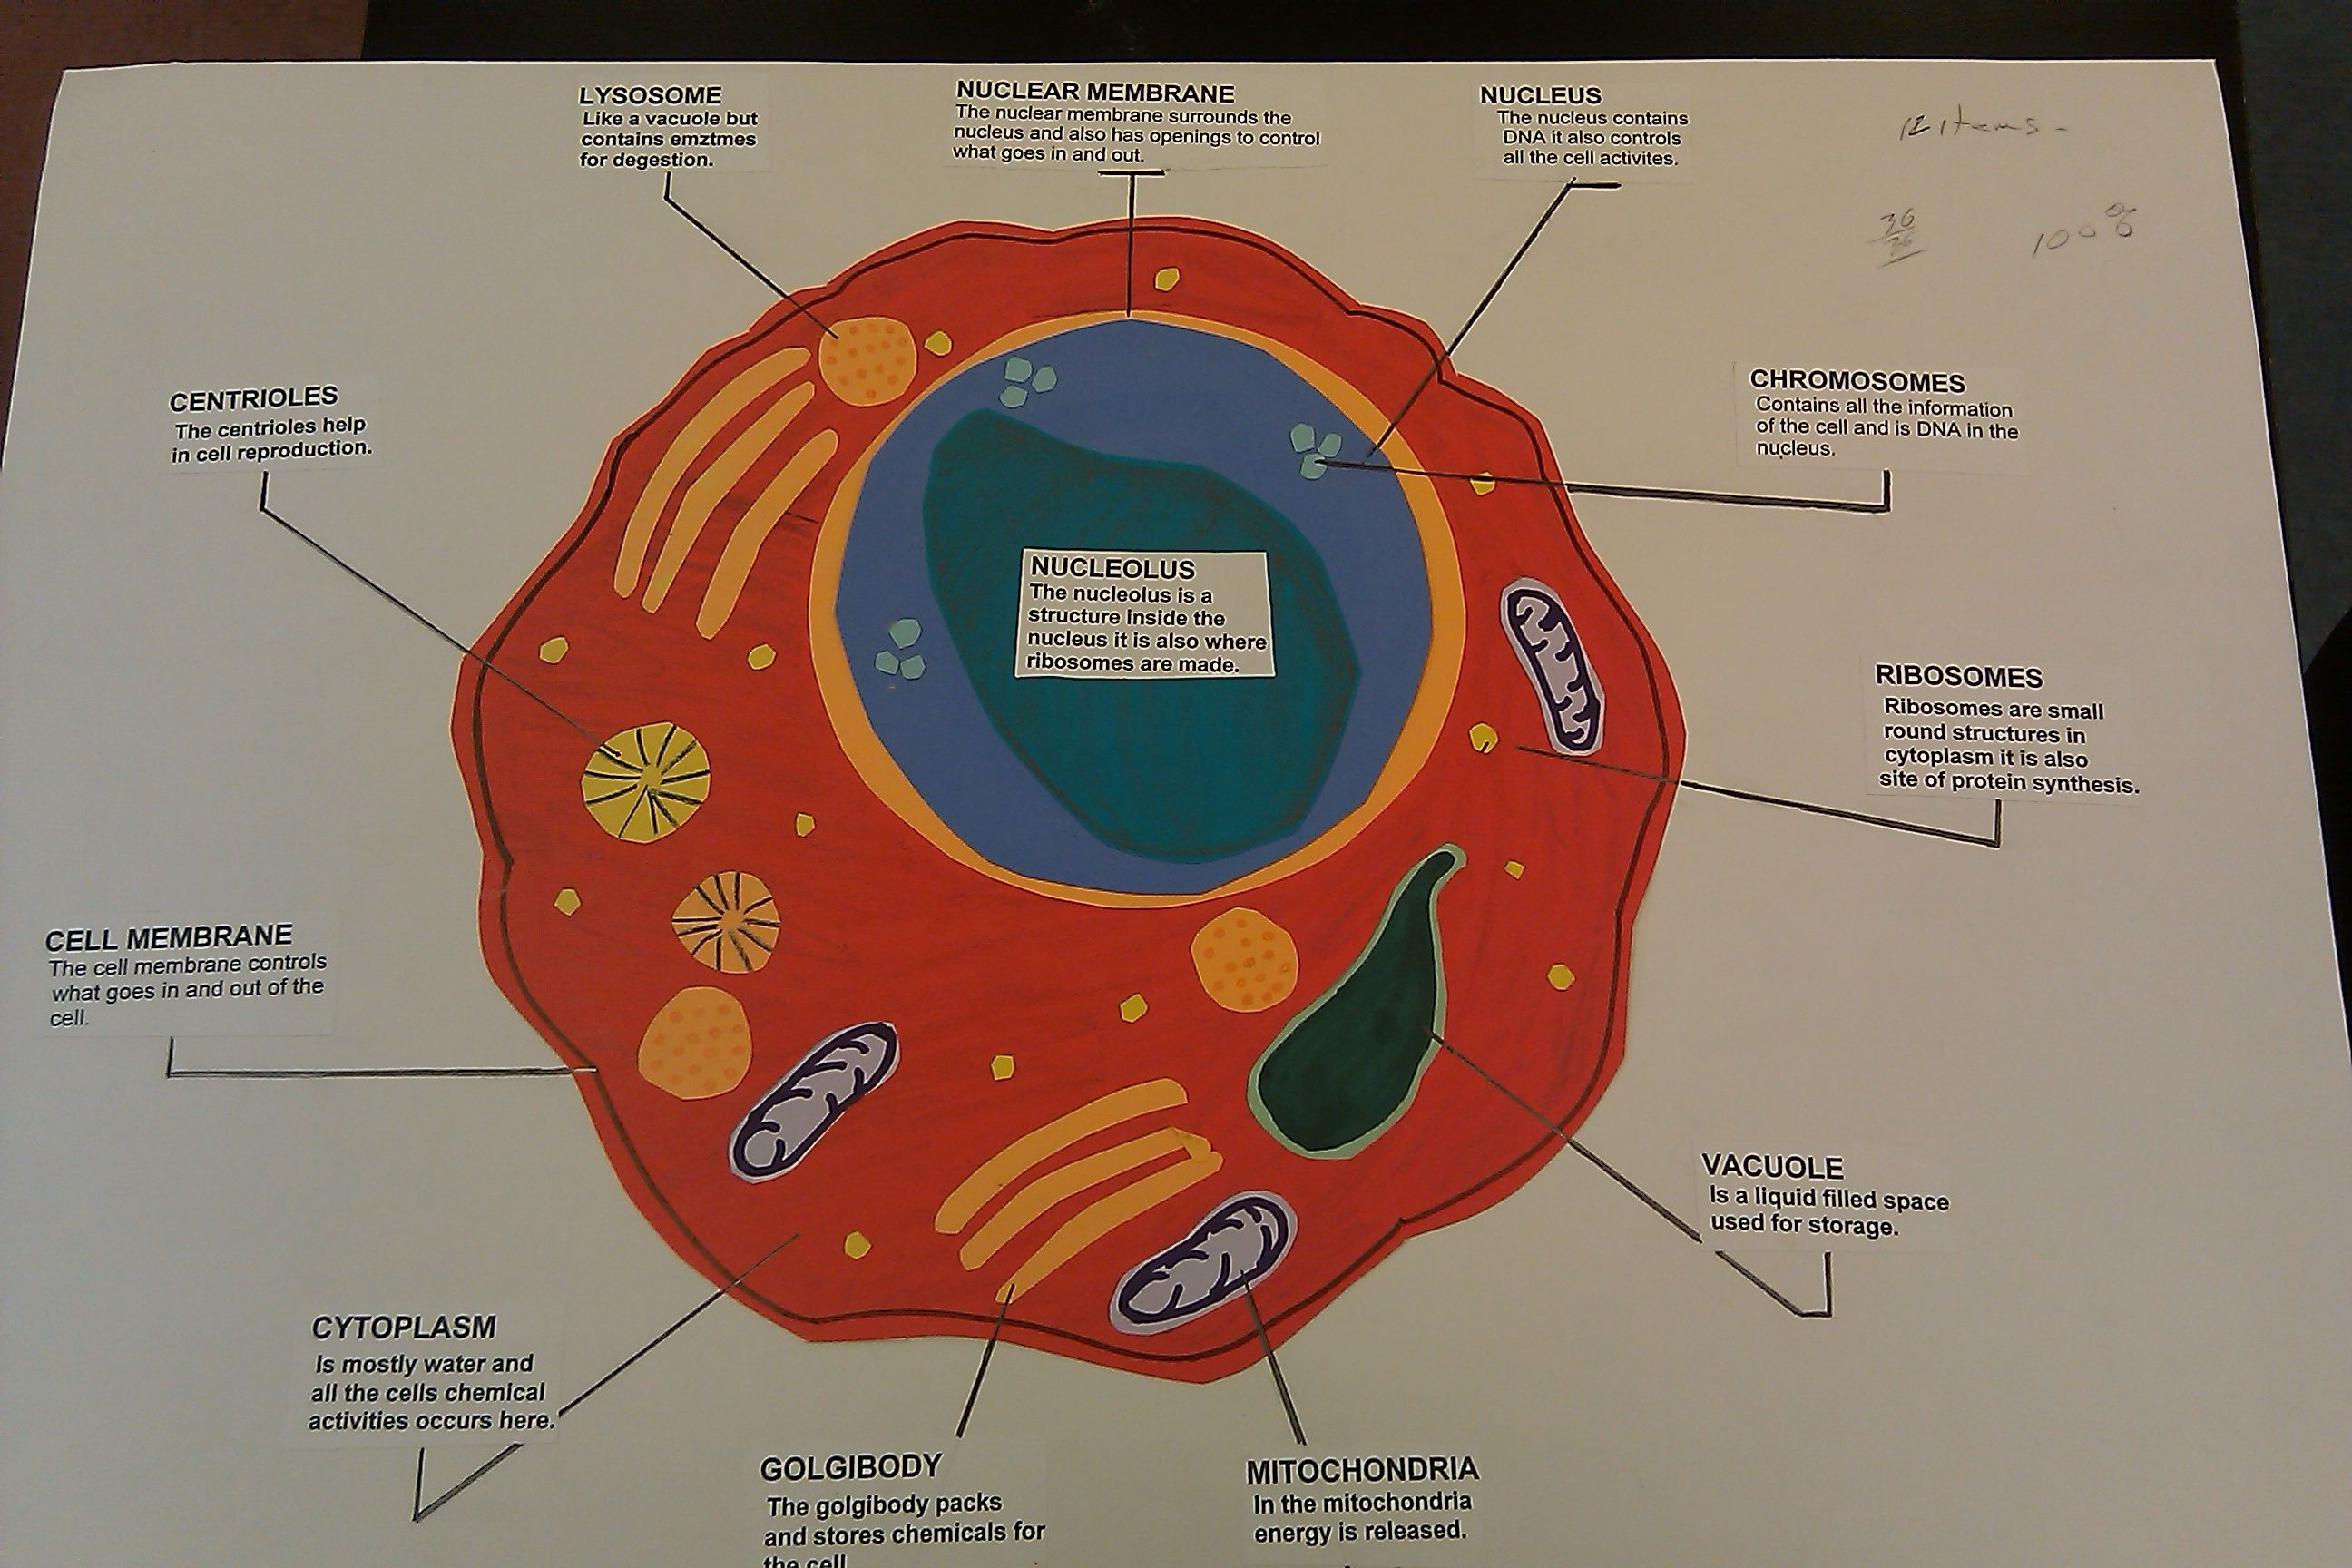 Cell structure and function poster ideas google search 7th grade cell structure and function poster ideas google search ccuart Images